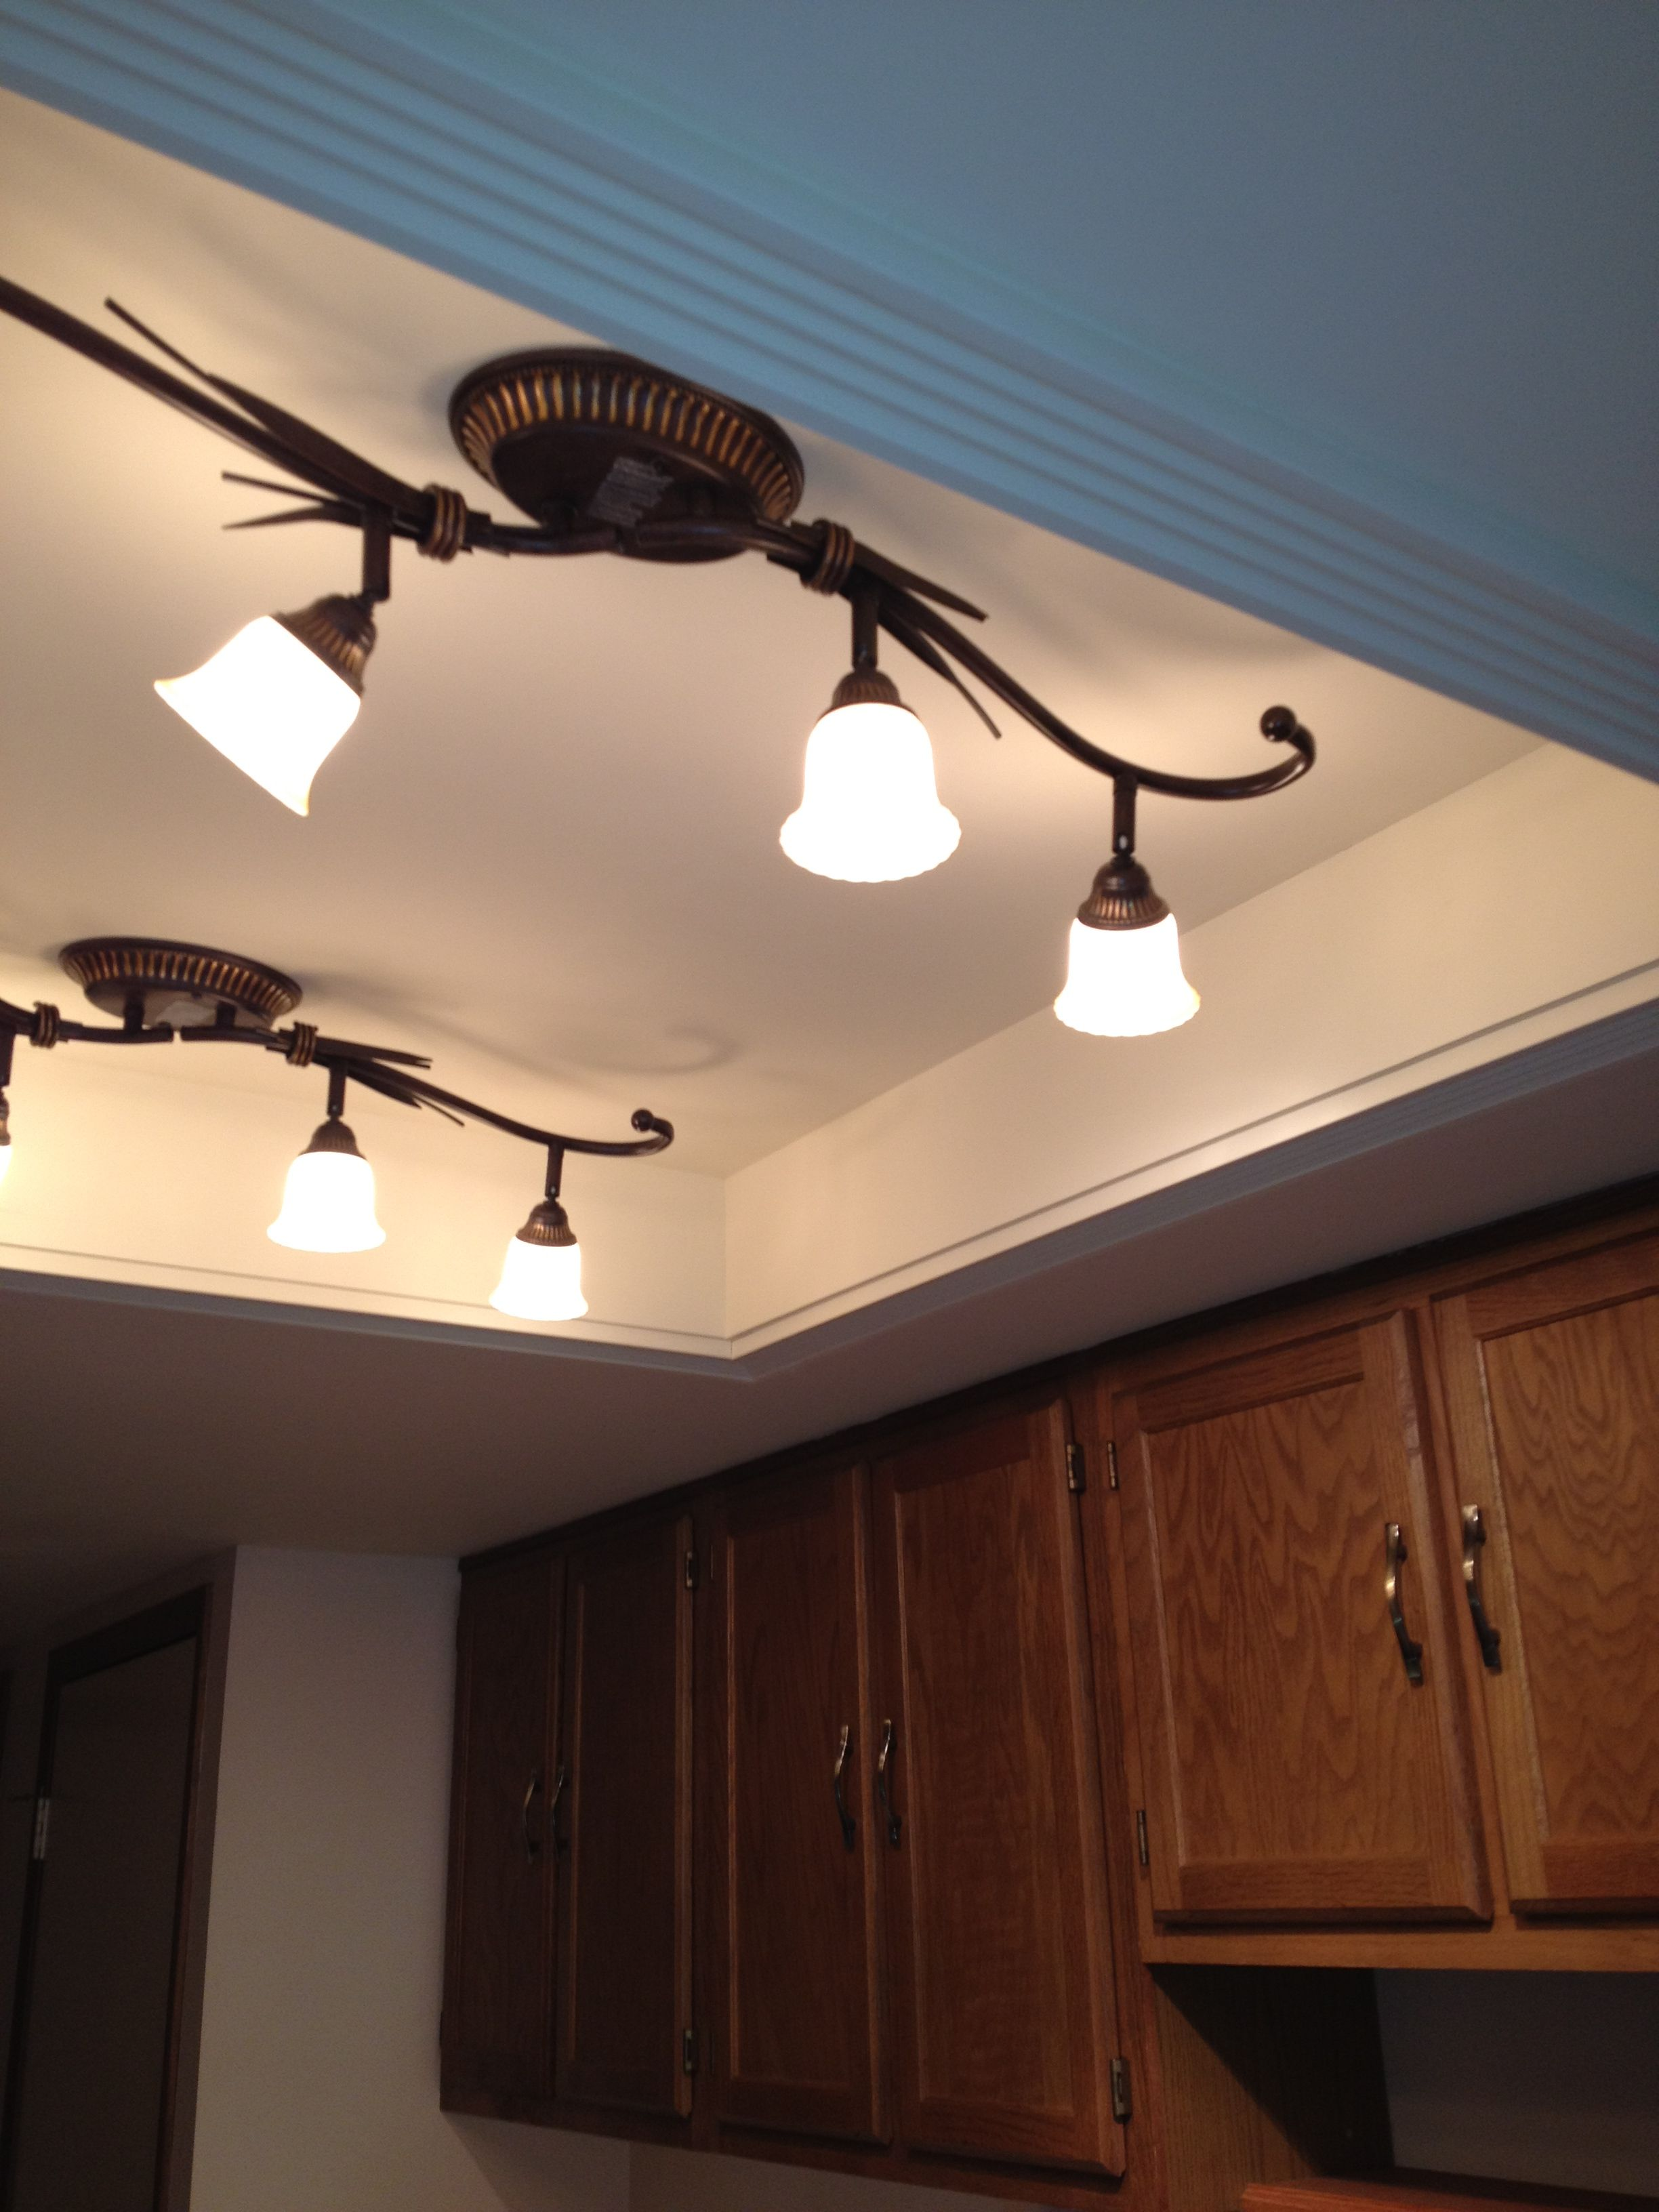 Convert That Ugly Recessed Fluorescent Ceiling Lighting In Your Kitchen To A Beautiful Trayed